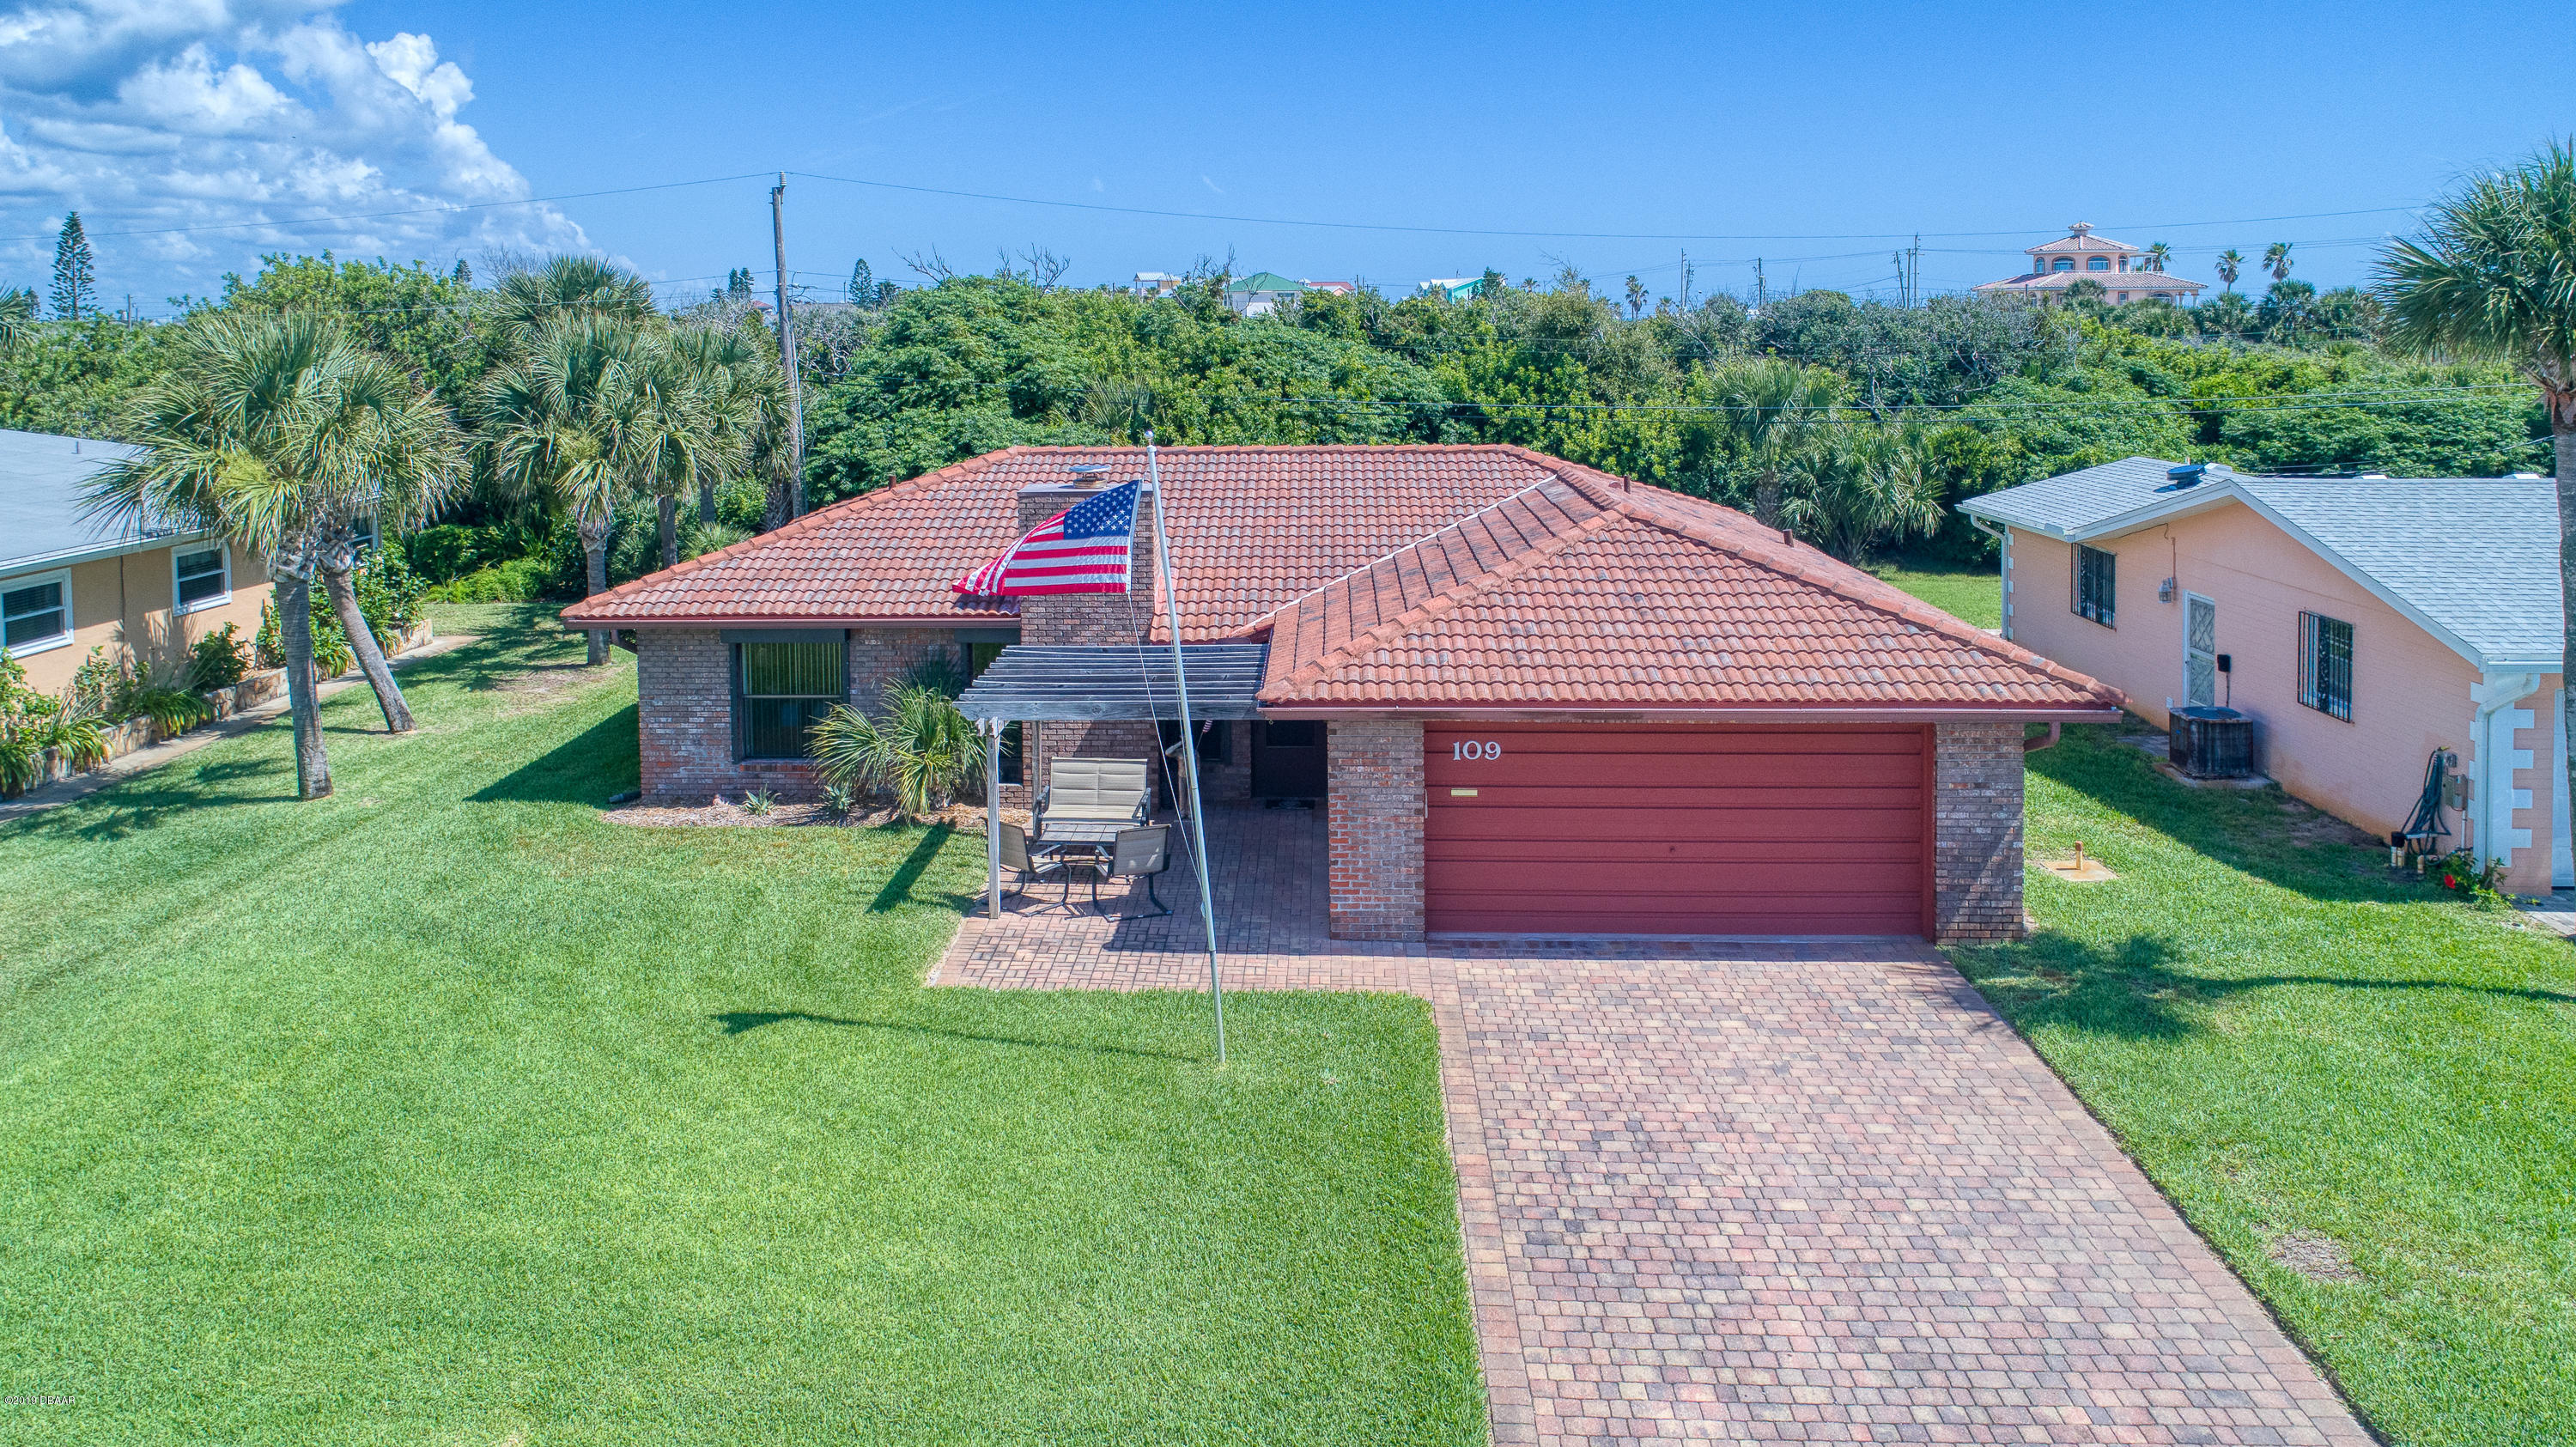 109 Beau Rivage Drive 32176 - One of Ormond Beach Homes for Sale